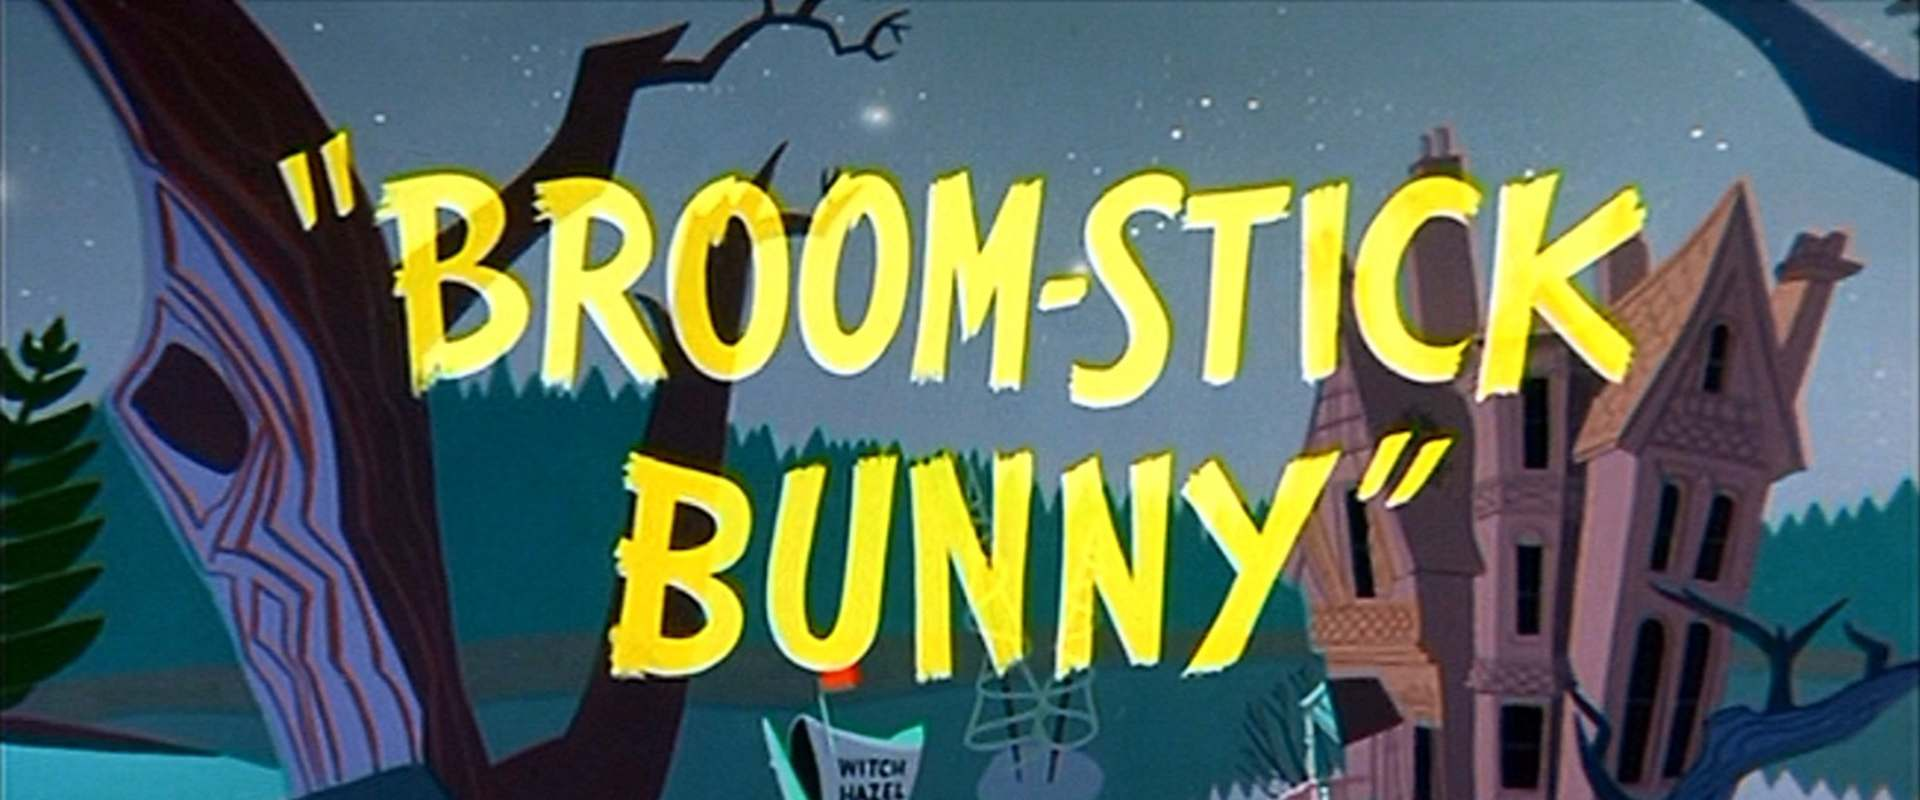 Broom-Stick Bunny background 2